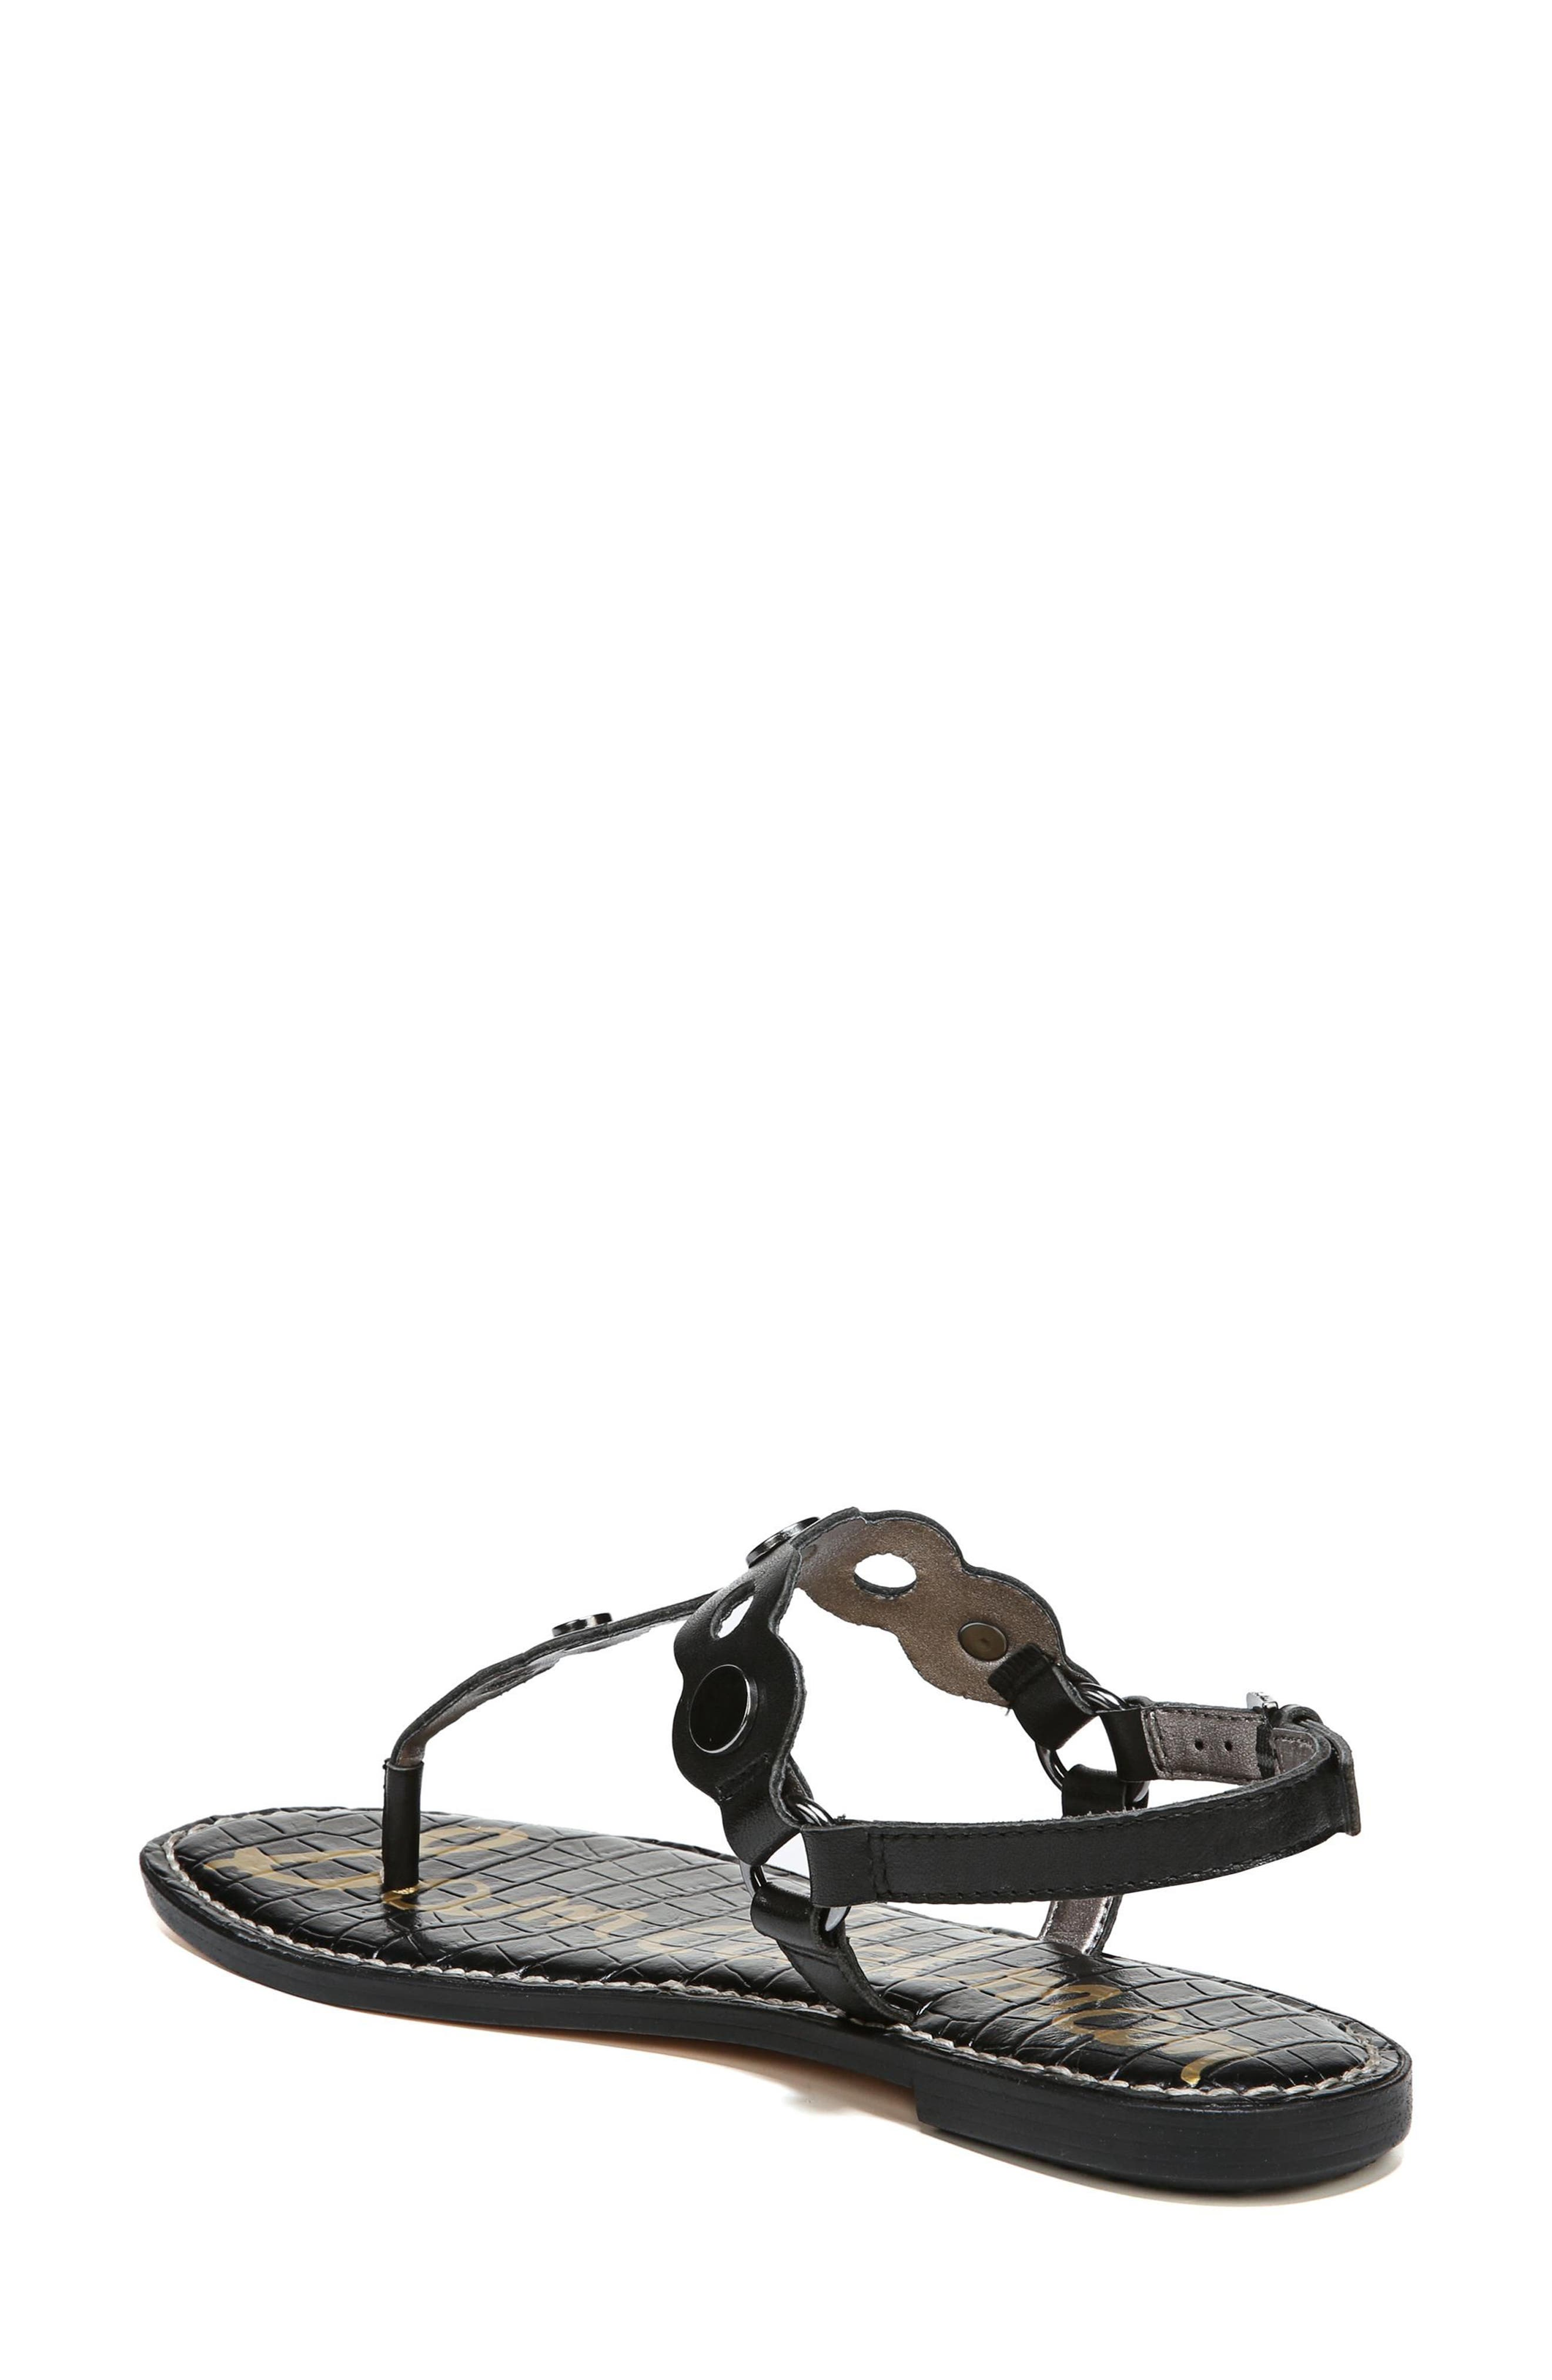 Gilly T-Strap Sandal,                             Alternate thumbnail 5, color,